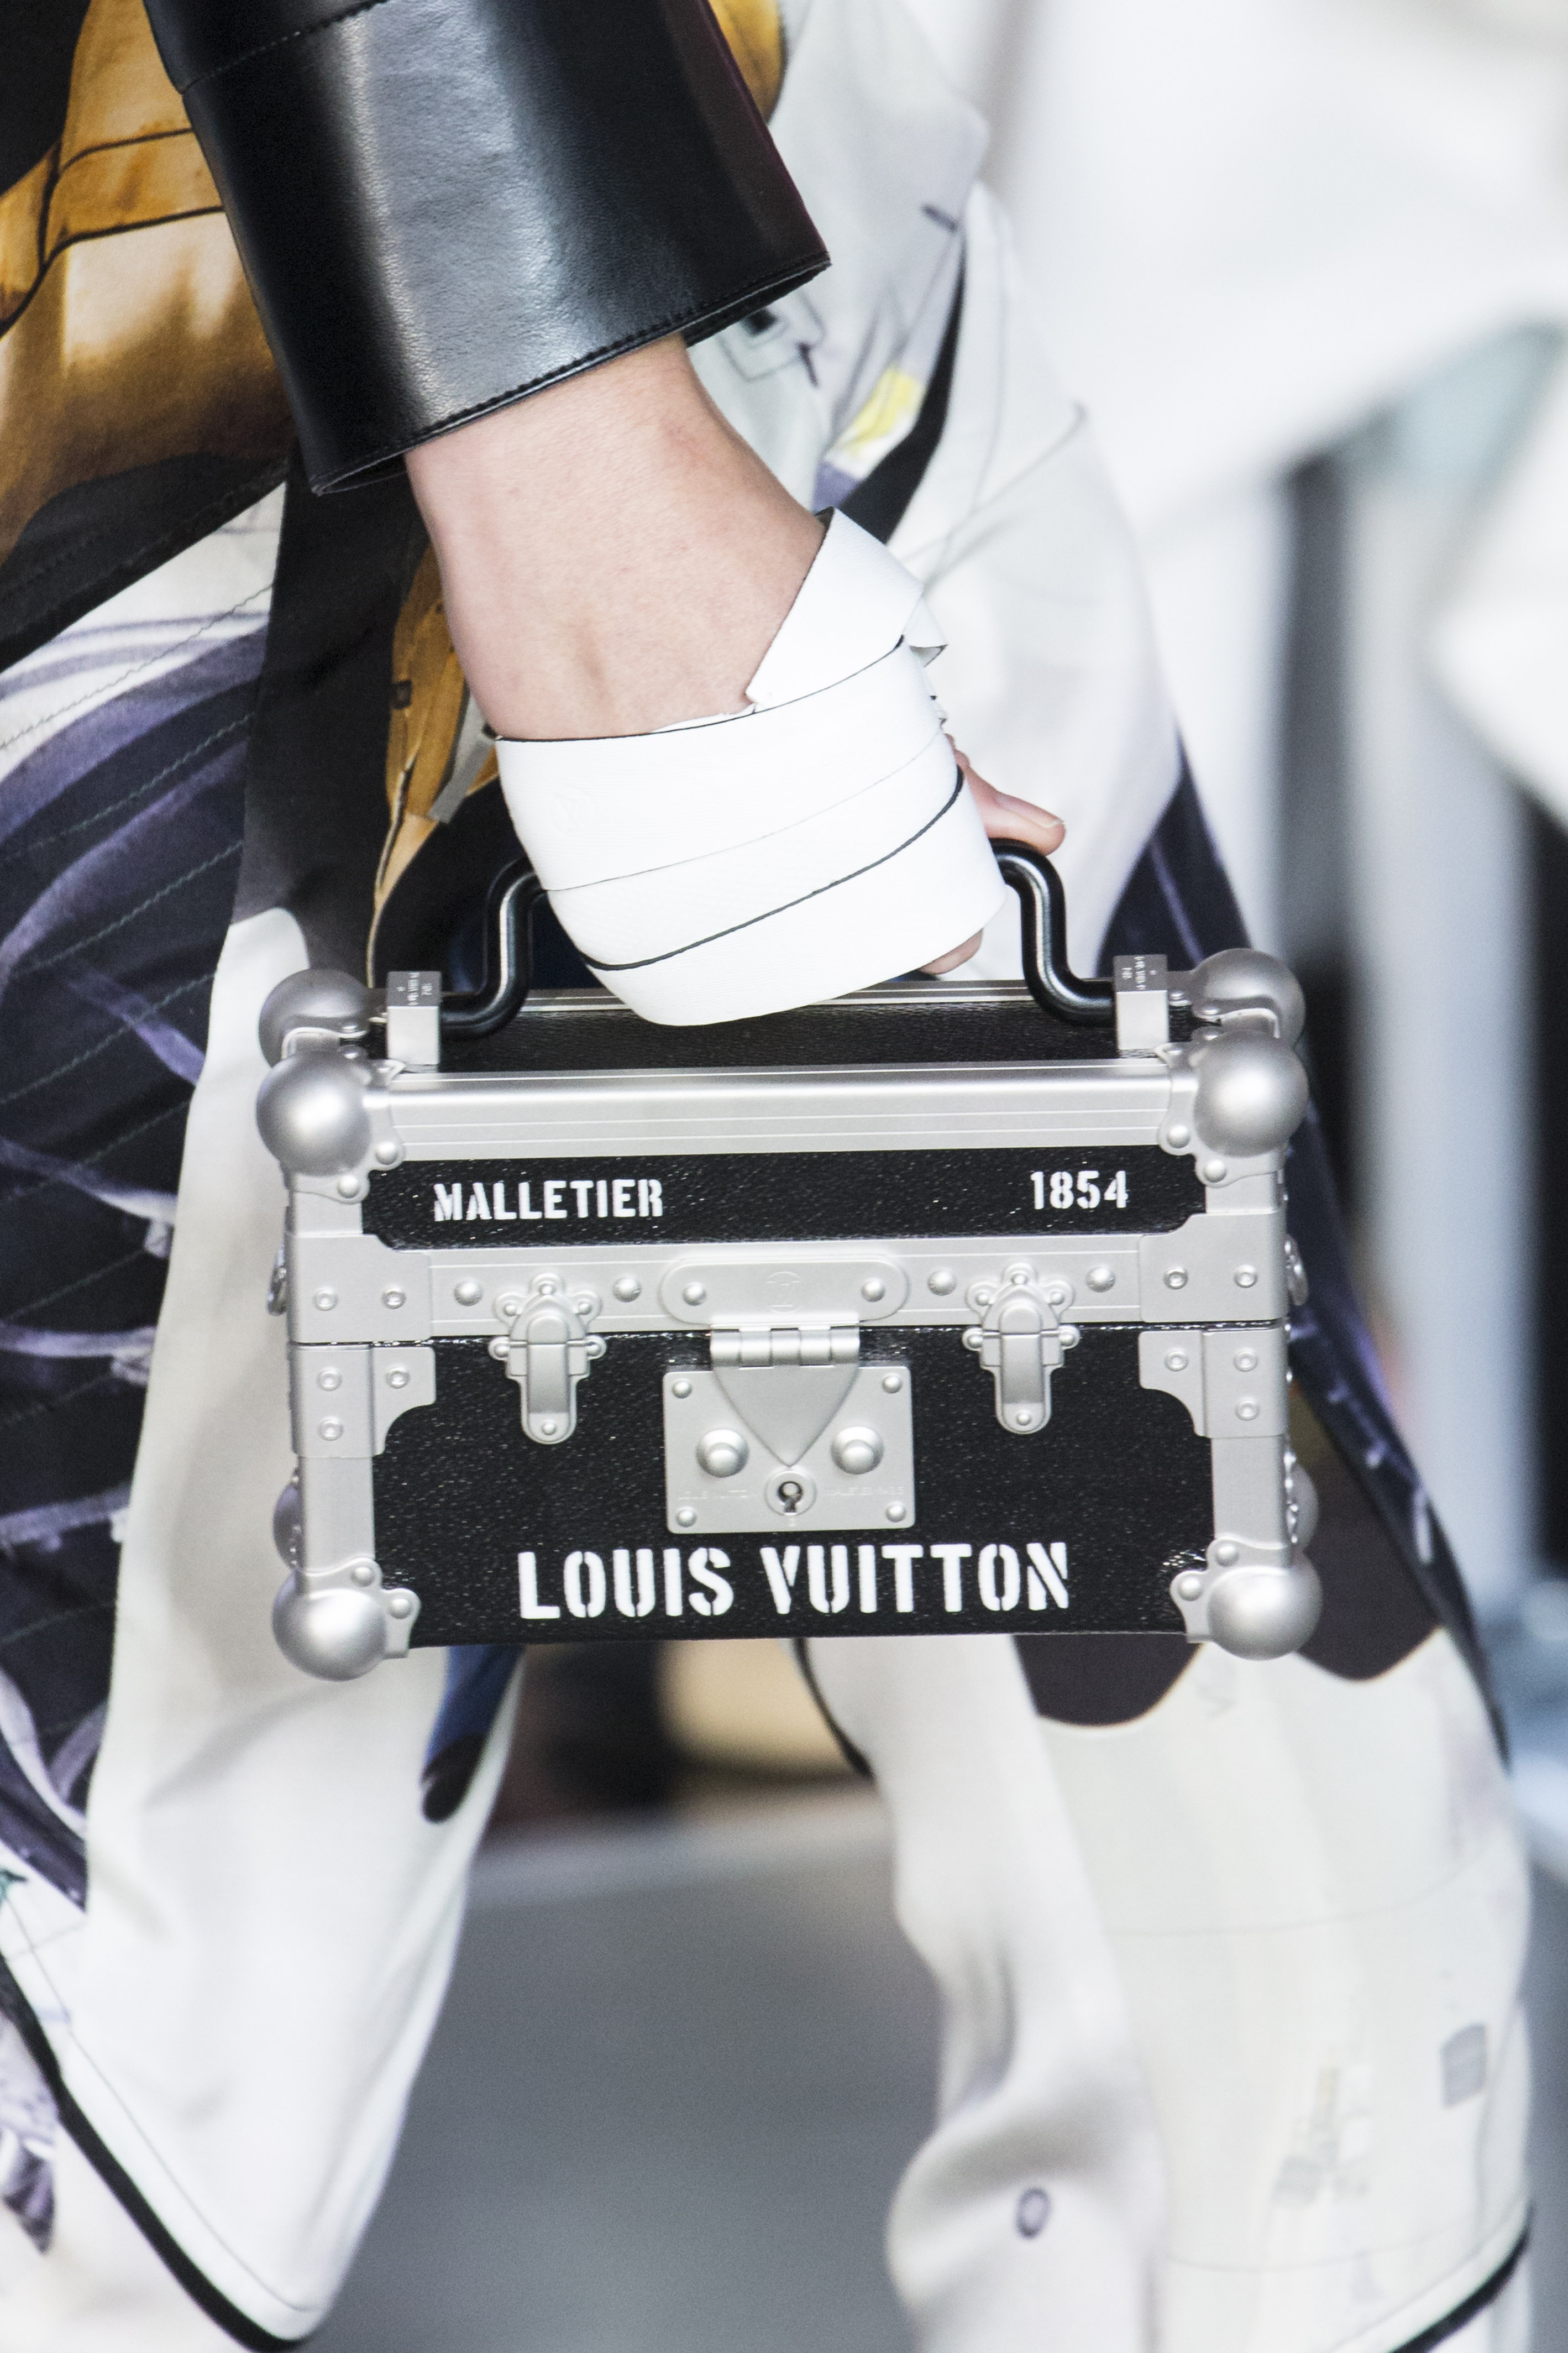 Louis_Vuitton_ss16_bags_leather_bracelets_044jpg